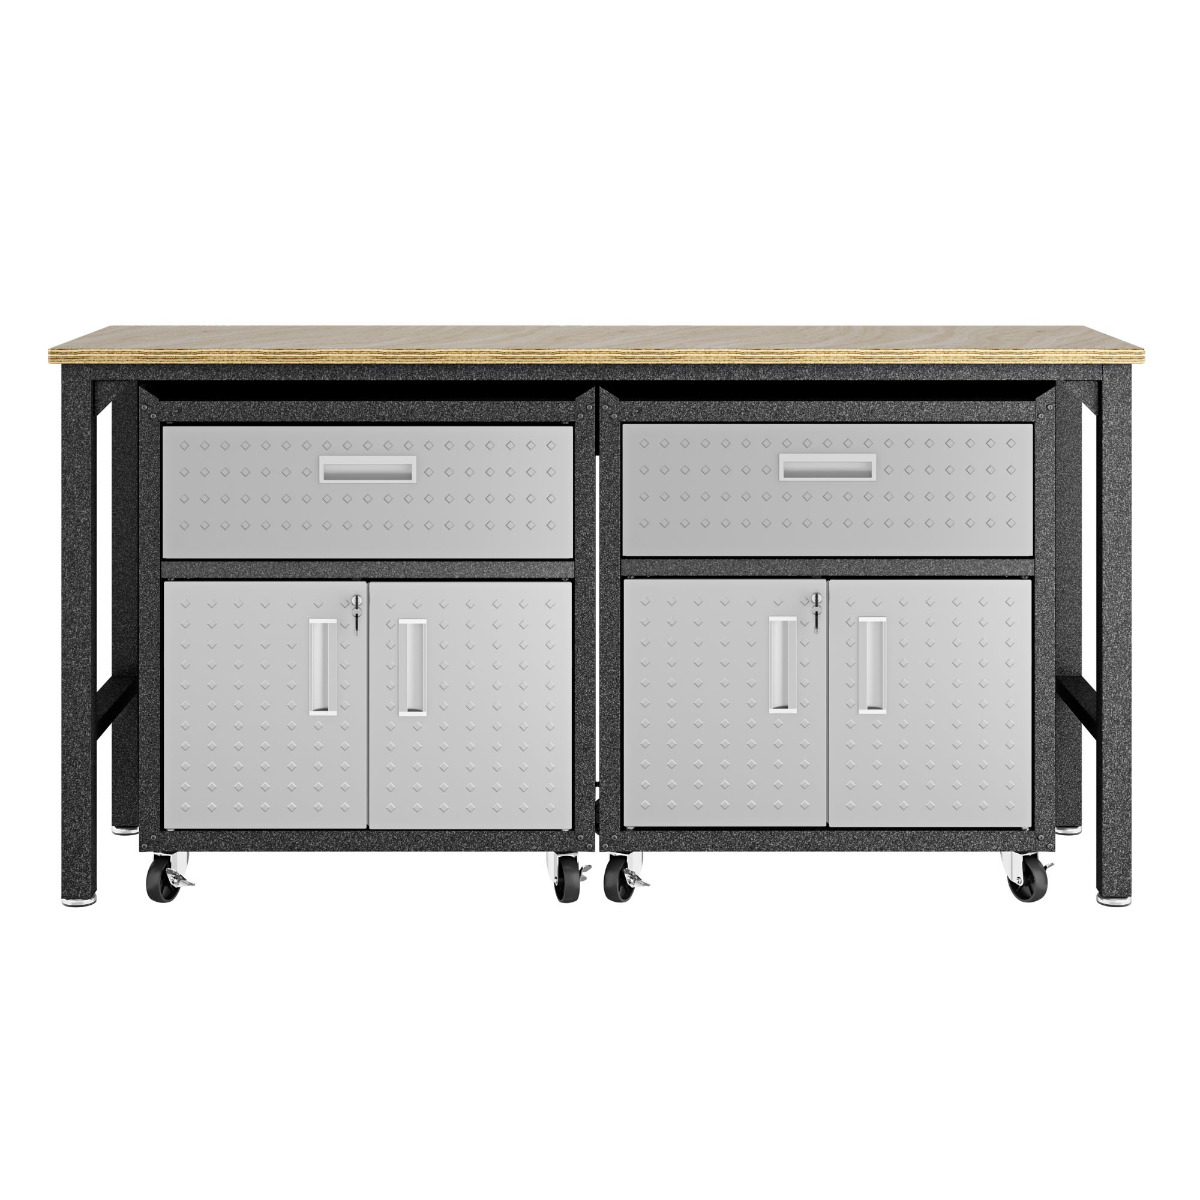 3-Piece Fortress Mobile Space-Saving Garage Cabinet and Worktable 4.0